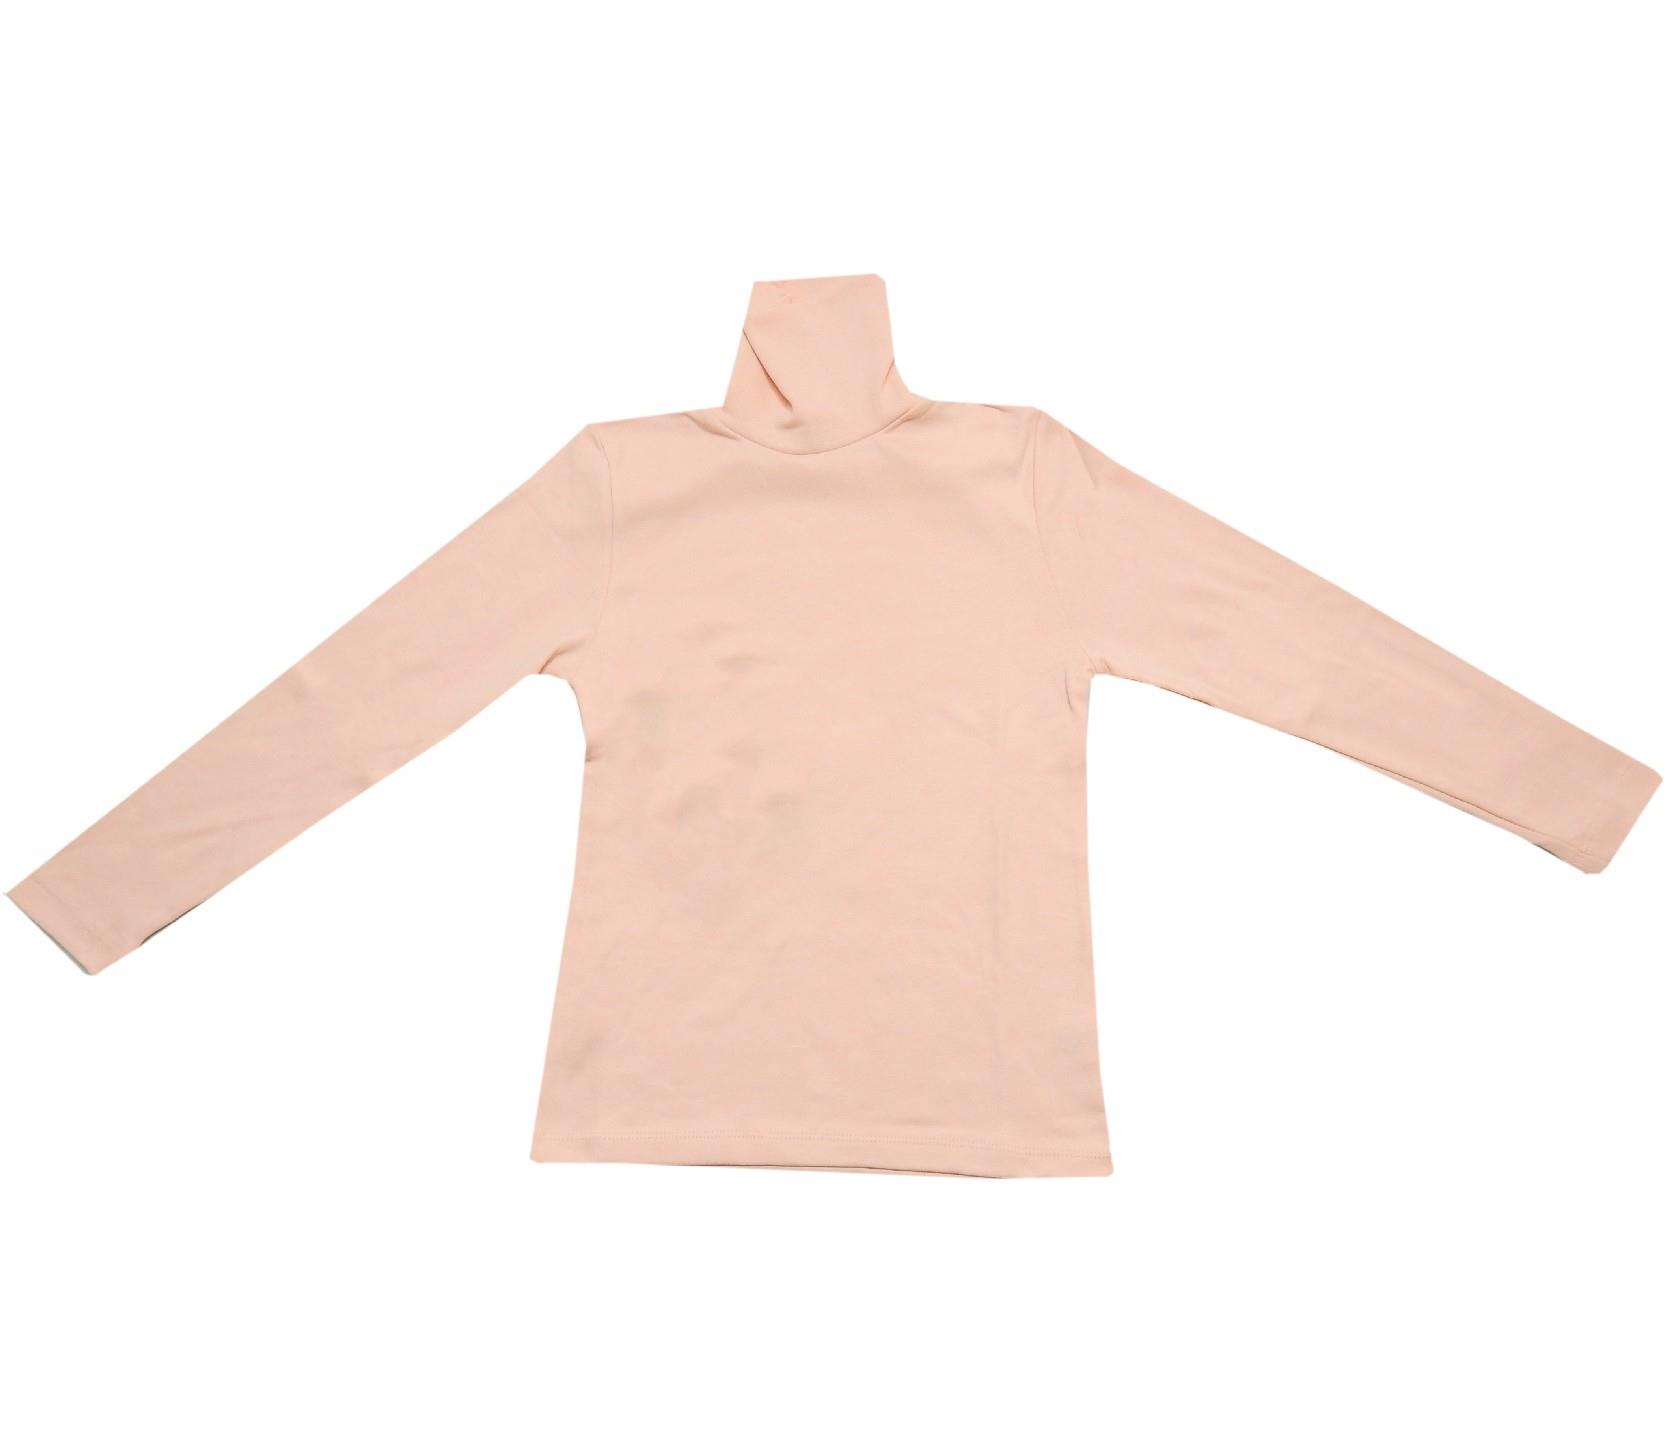 116 wholesale turtleneck sweater for kids (5-6-7-8 age)